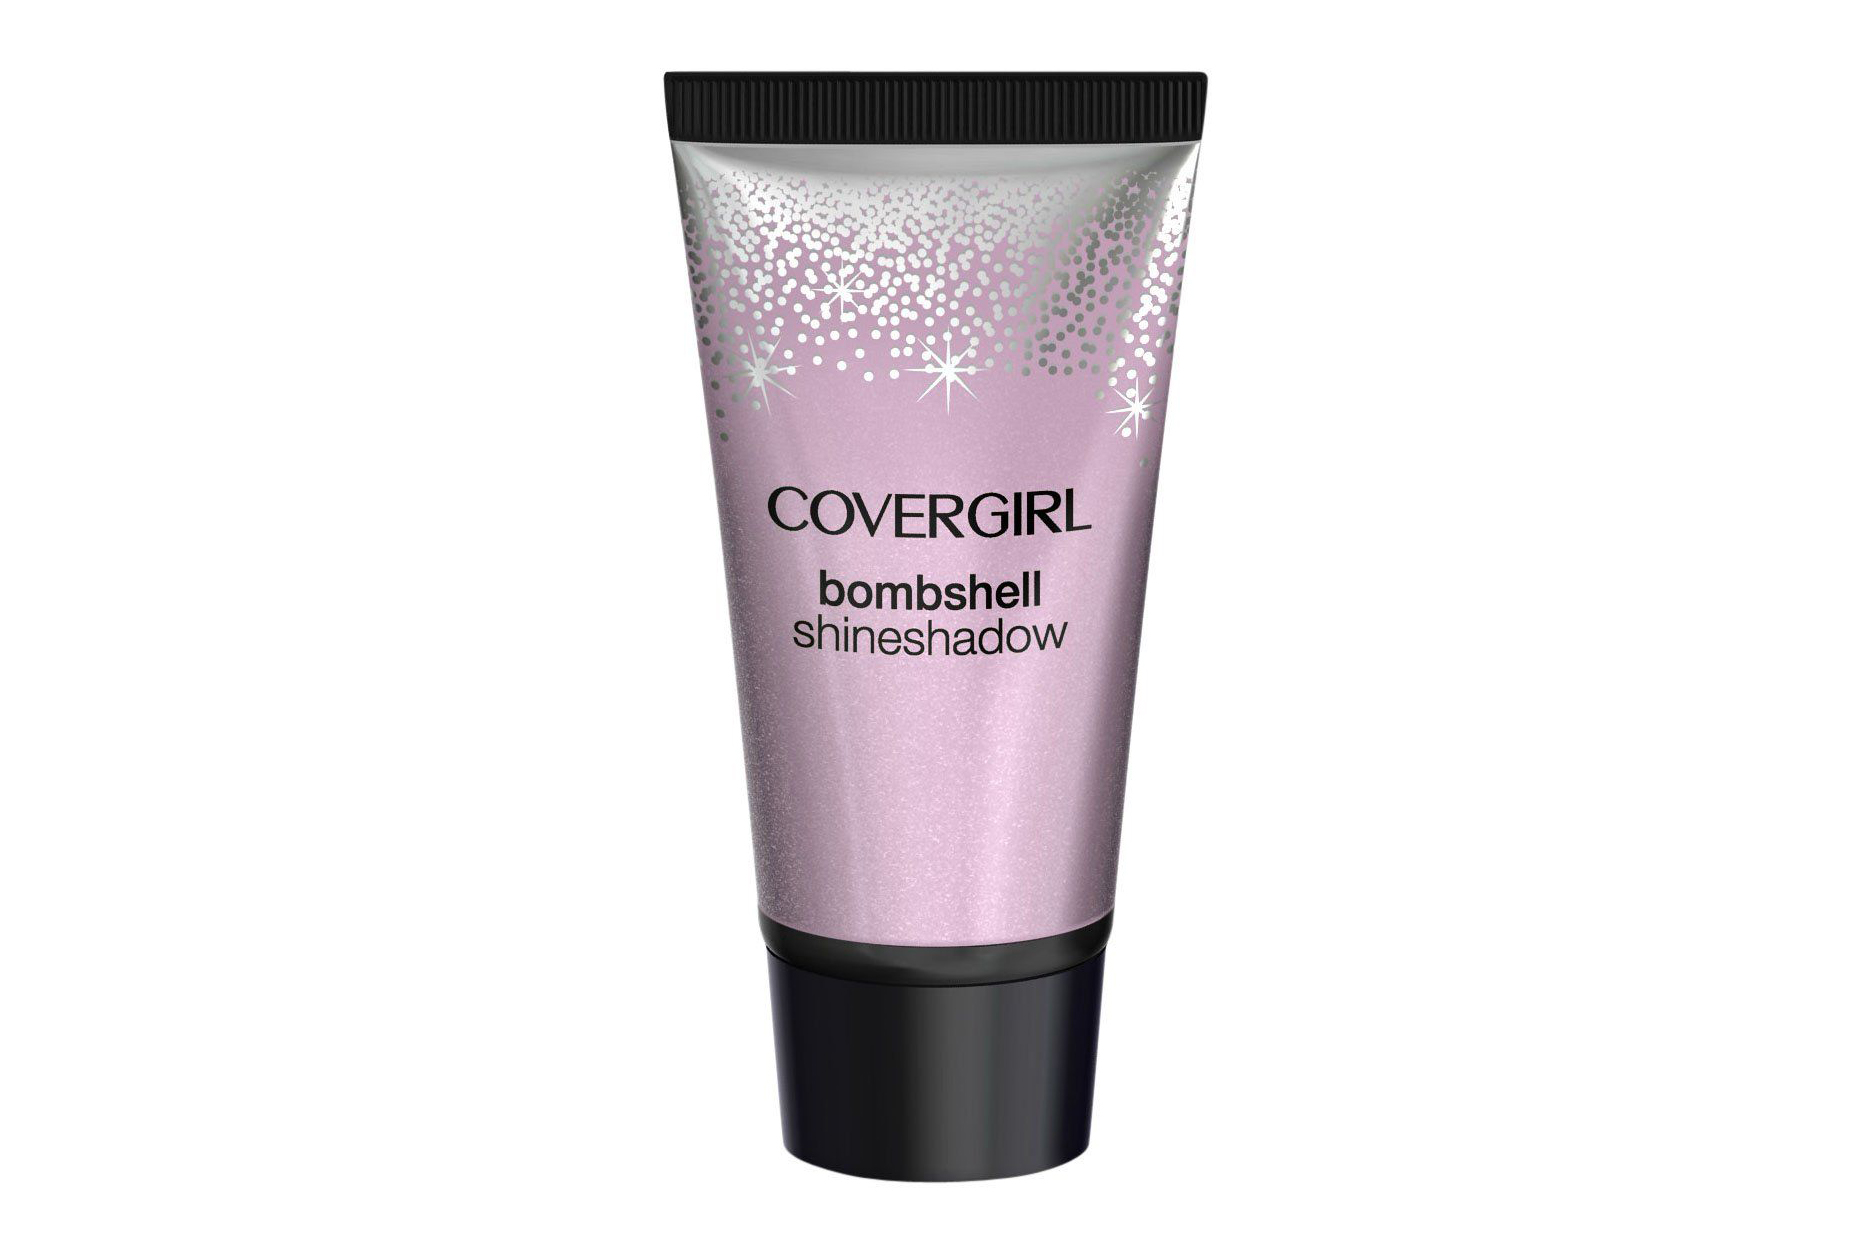 Covergirl Bombshell Shineshadow by Lashblast